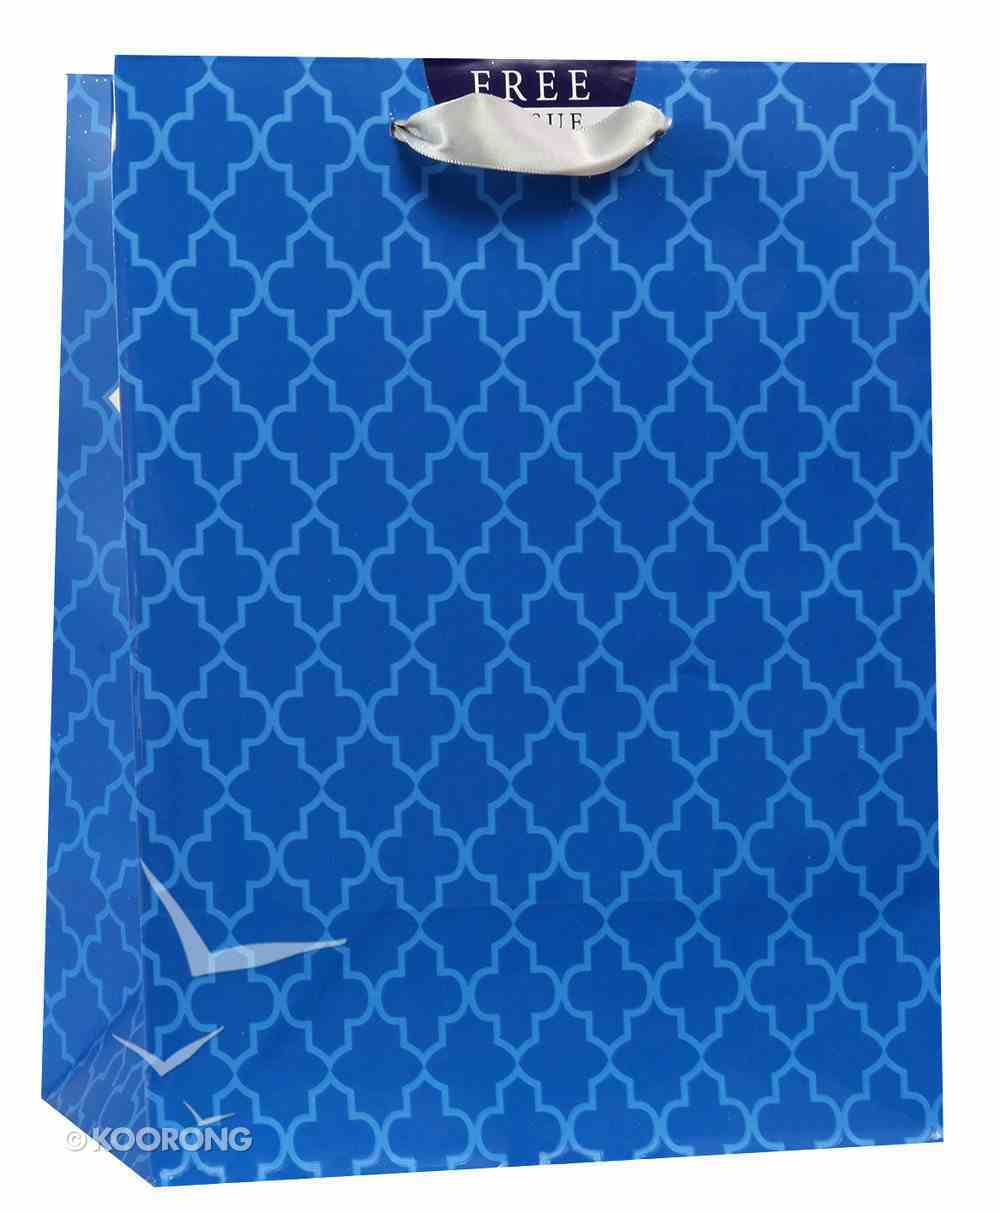 Gift Bag Medium: Blue Shapes, May the Lord Bless You (Numbers 6:24) Stationery